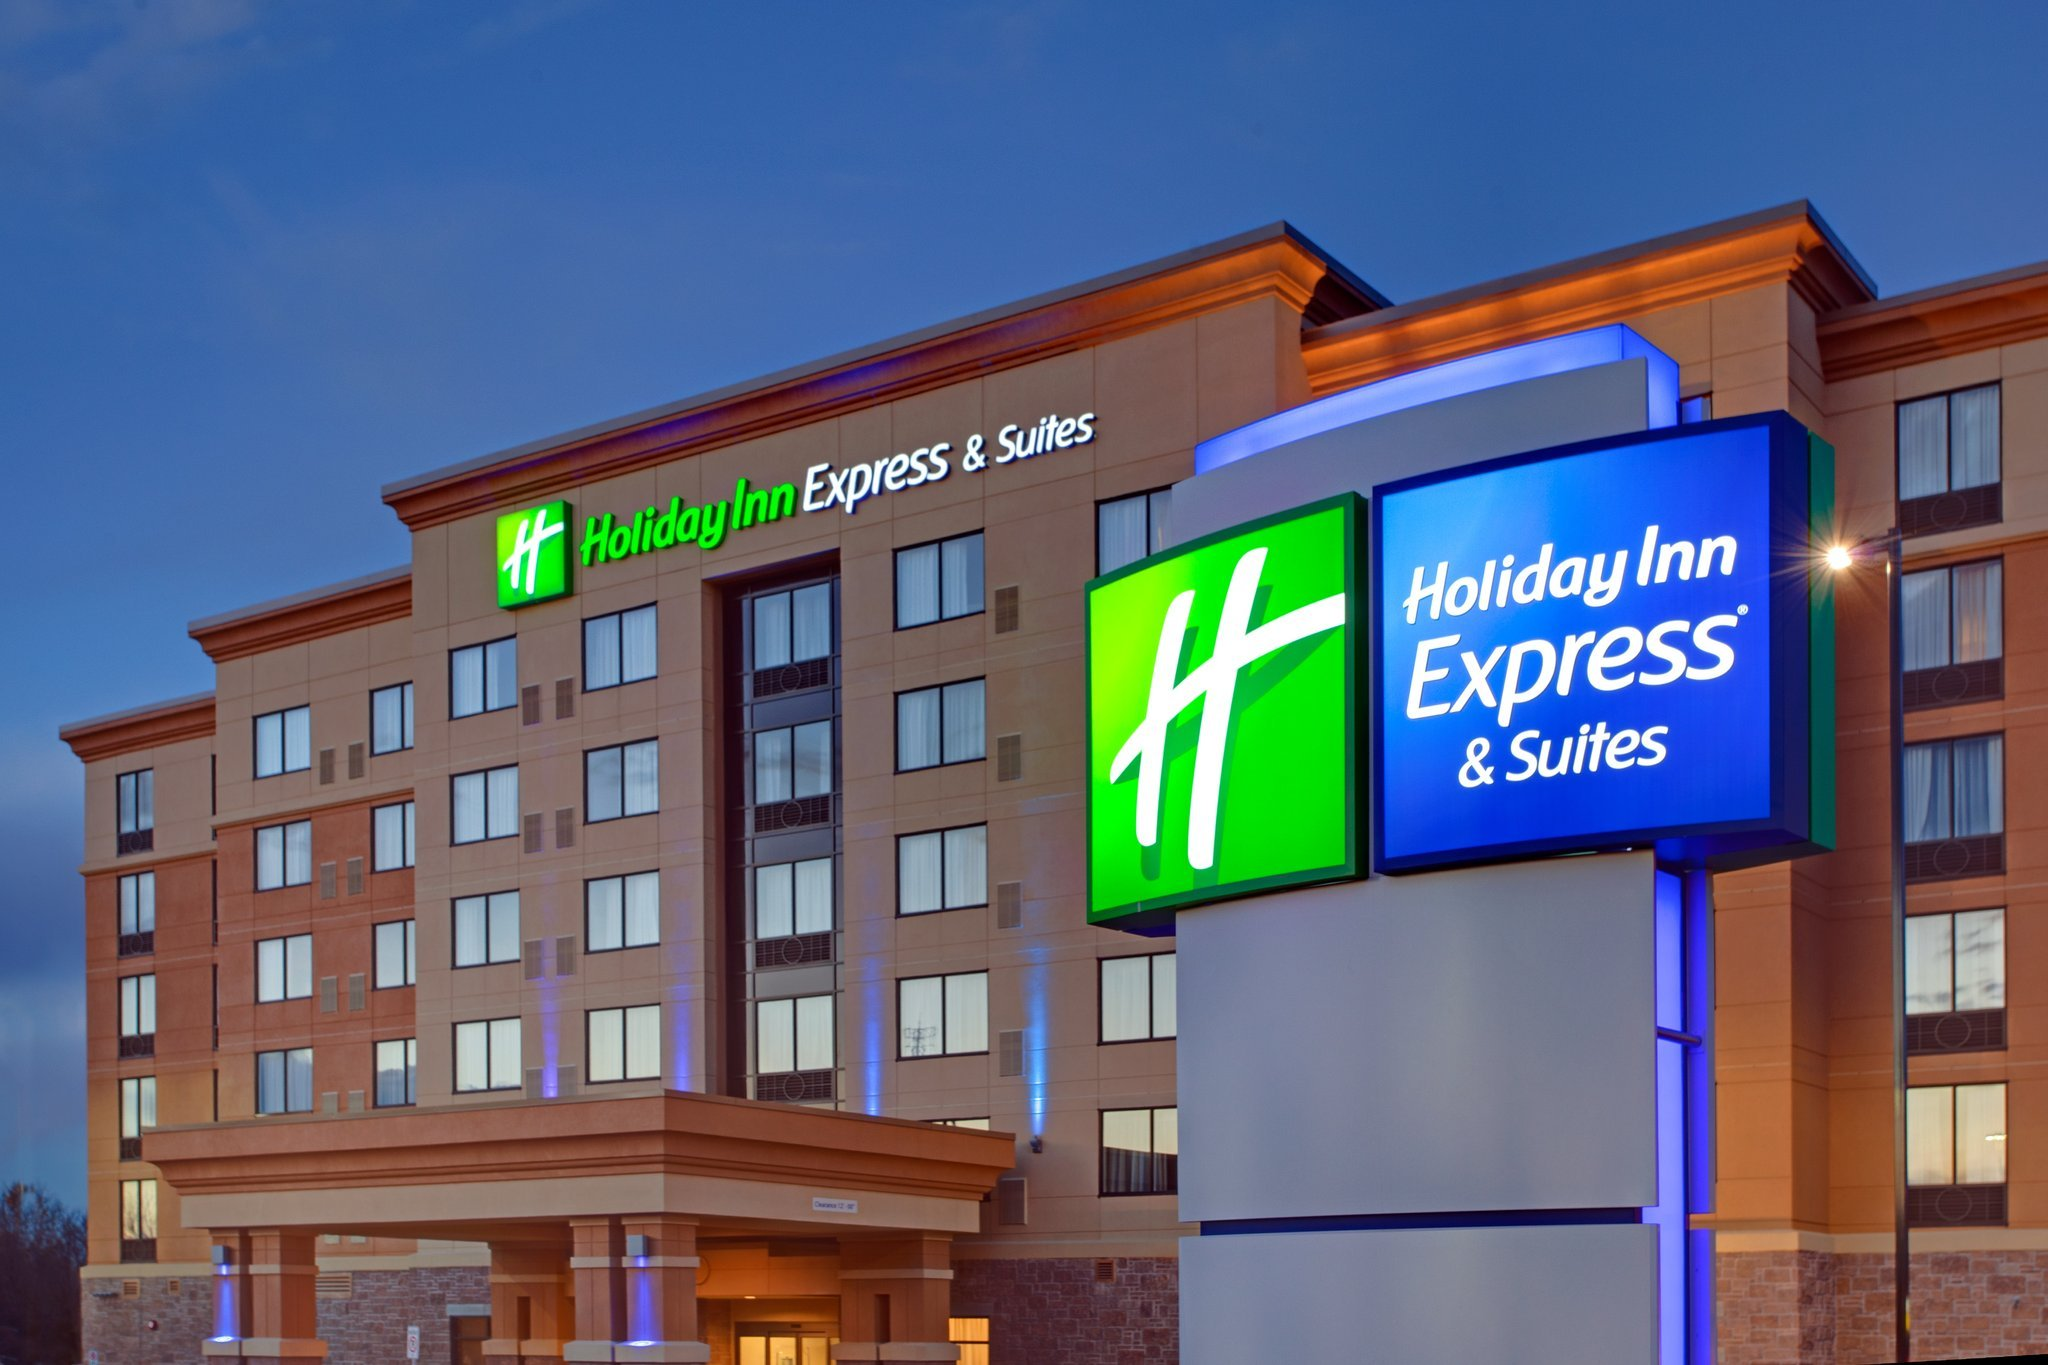 Holiday Inn Express & Suites Ottawa West - Nepean